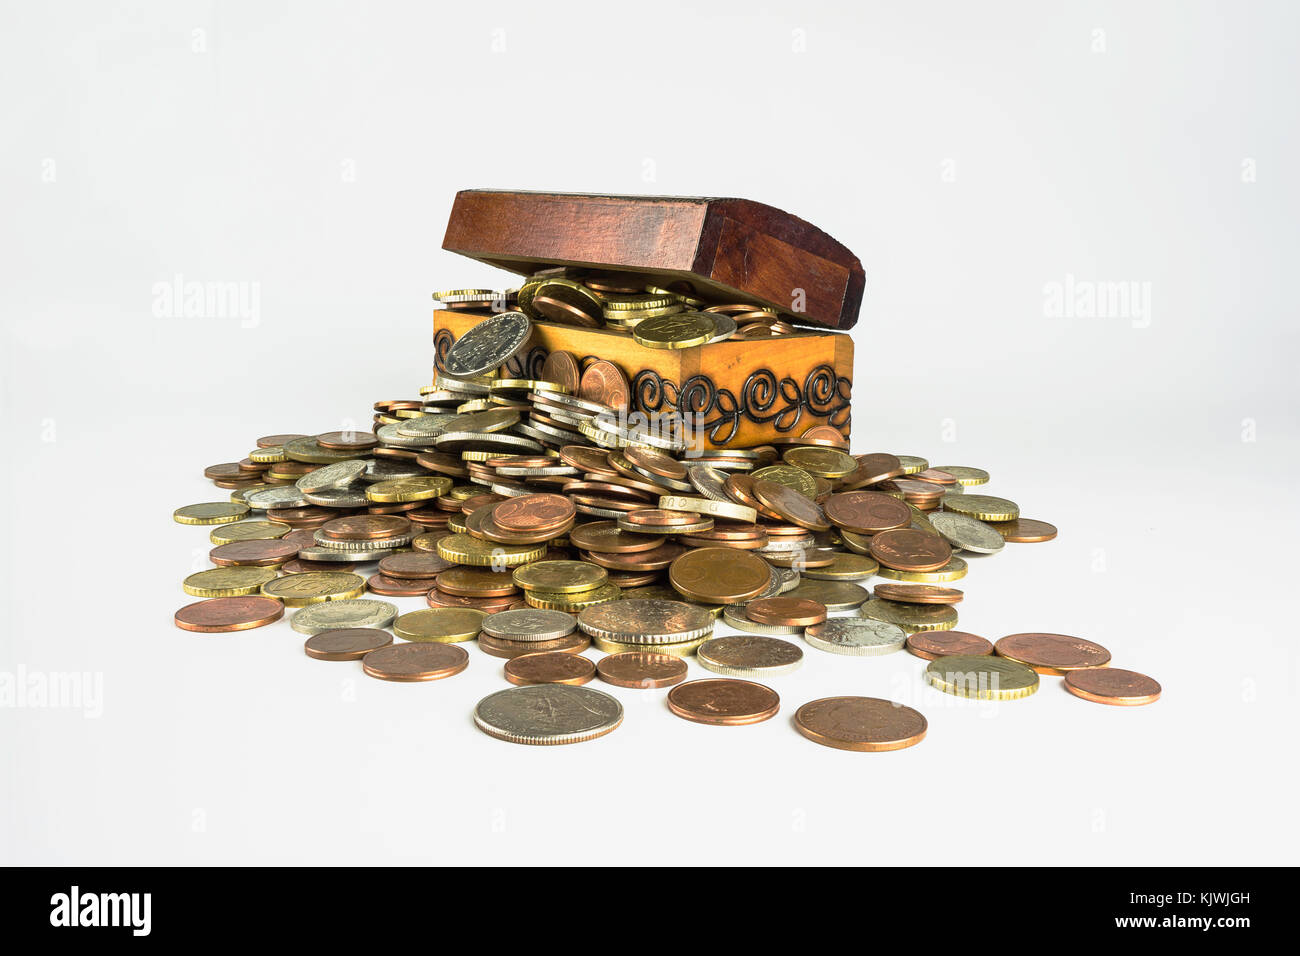 A small wooden treasure chest which is bursting with coins on a white background. Isolated composition which is - Stock Image